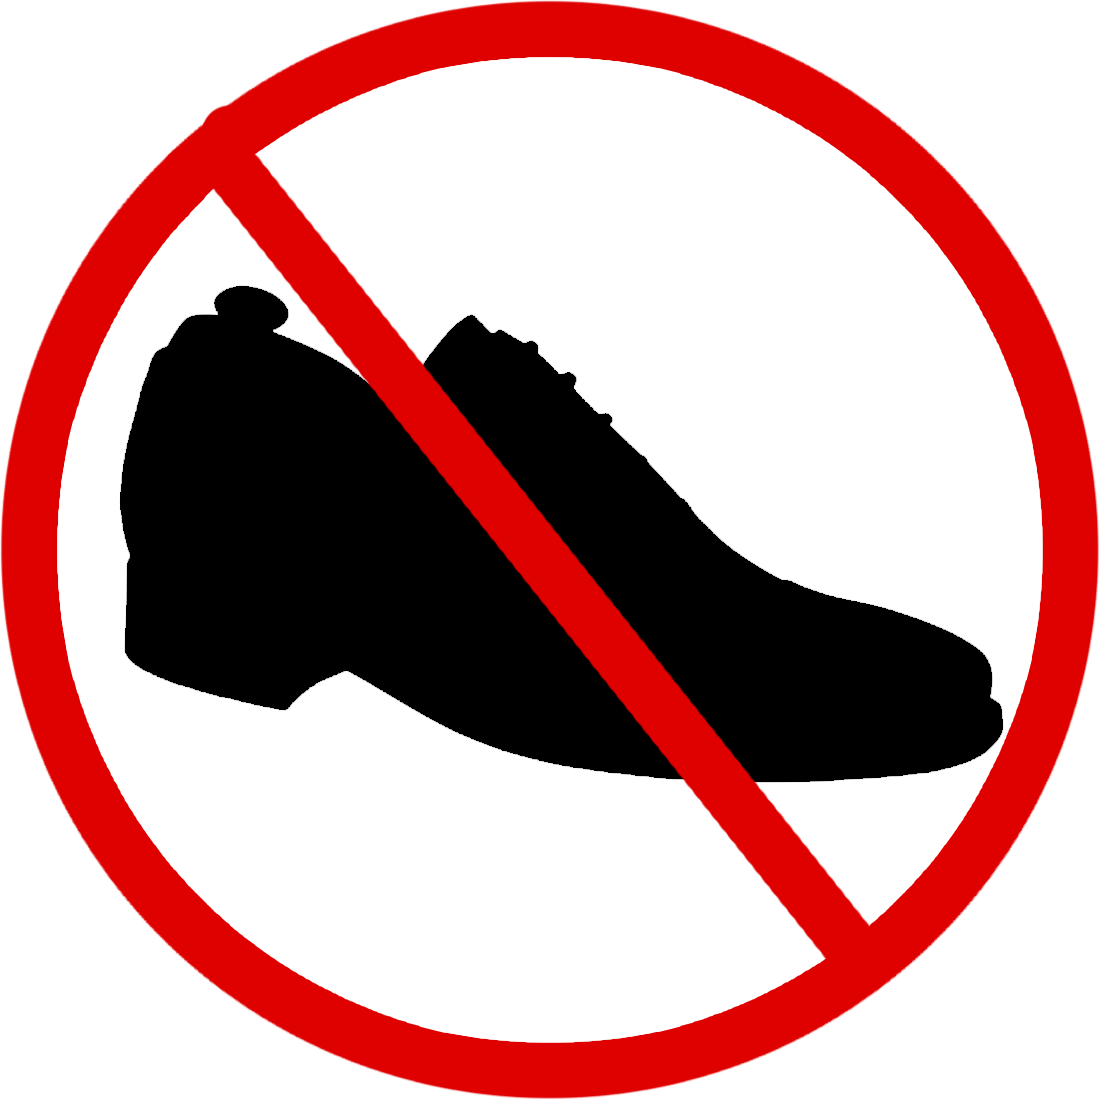 photo relating to Please Remove Your Shoes Sign Printable Free titled Acquire Off Sneakers Png Free of charge Just take Off Sneakers.png Clear